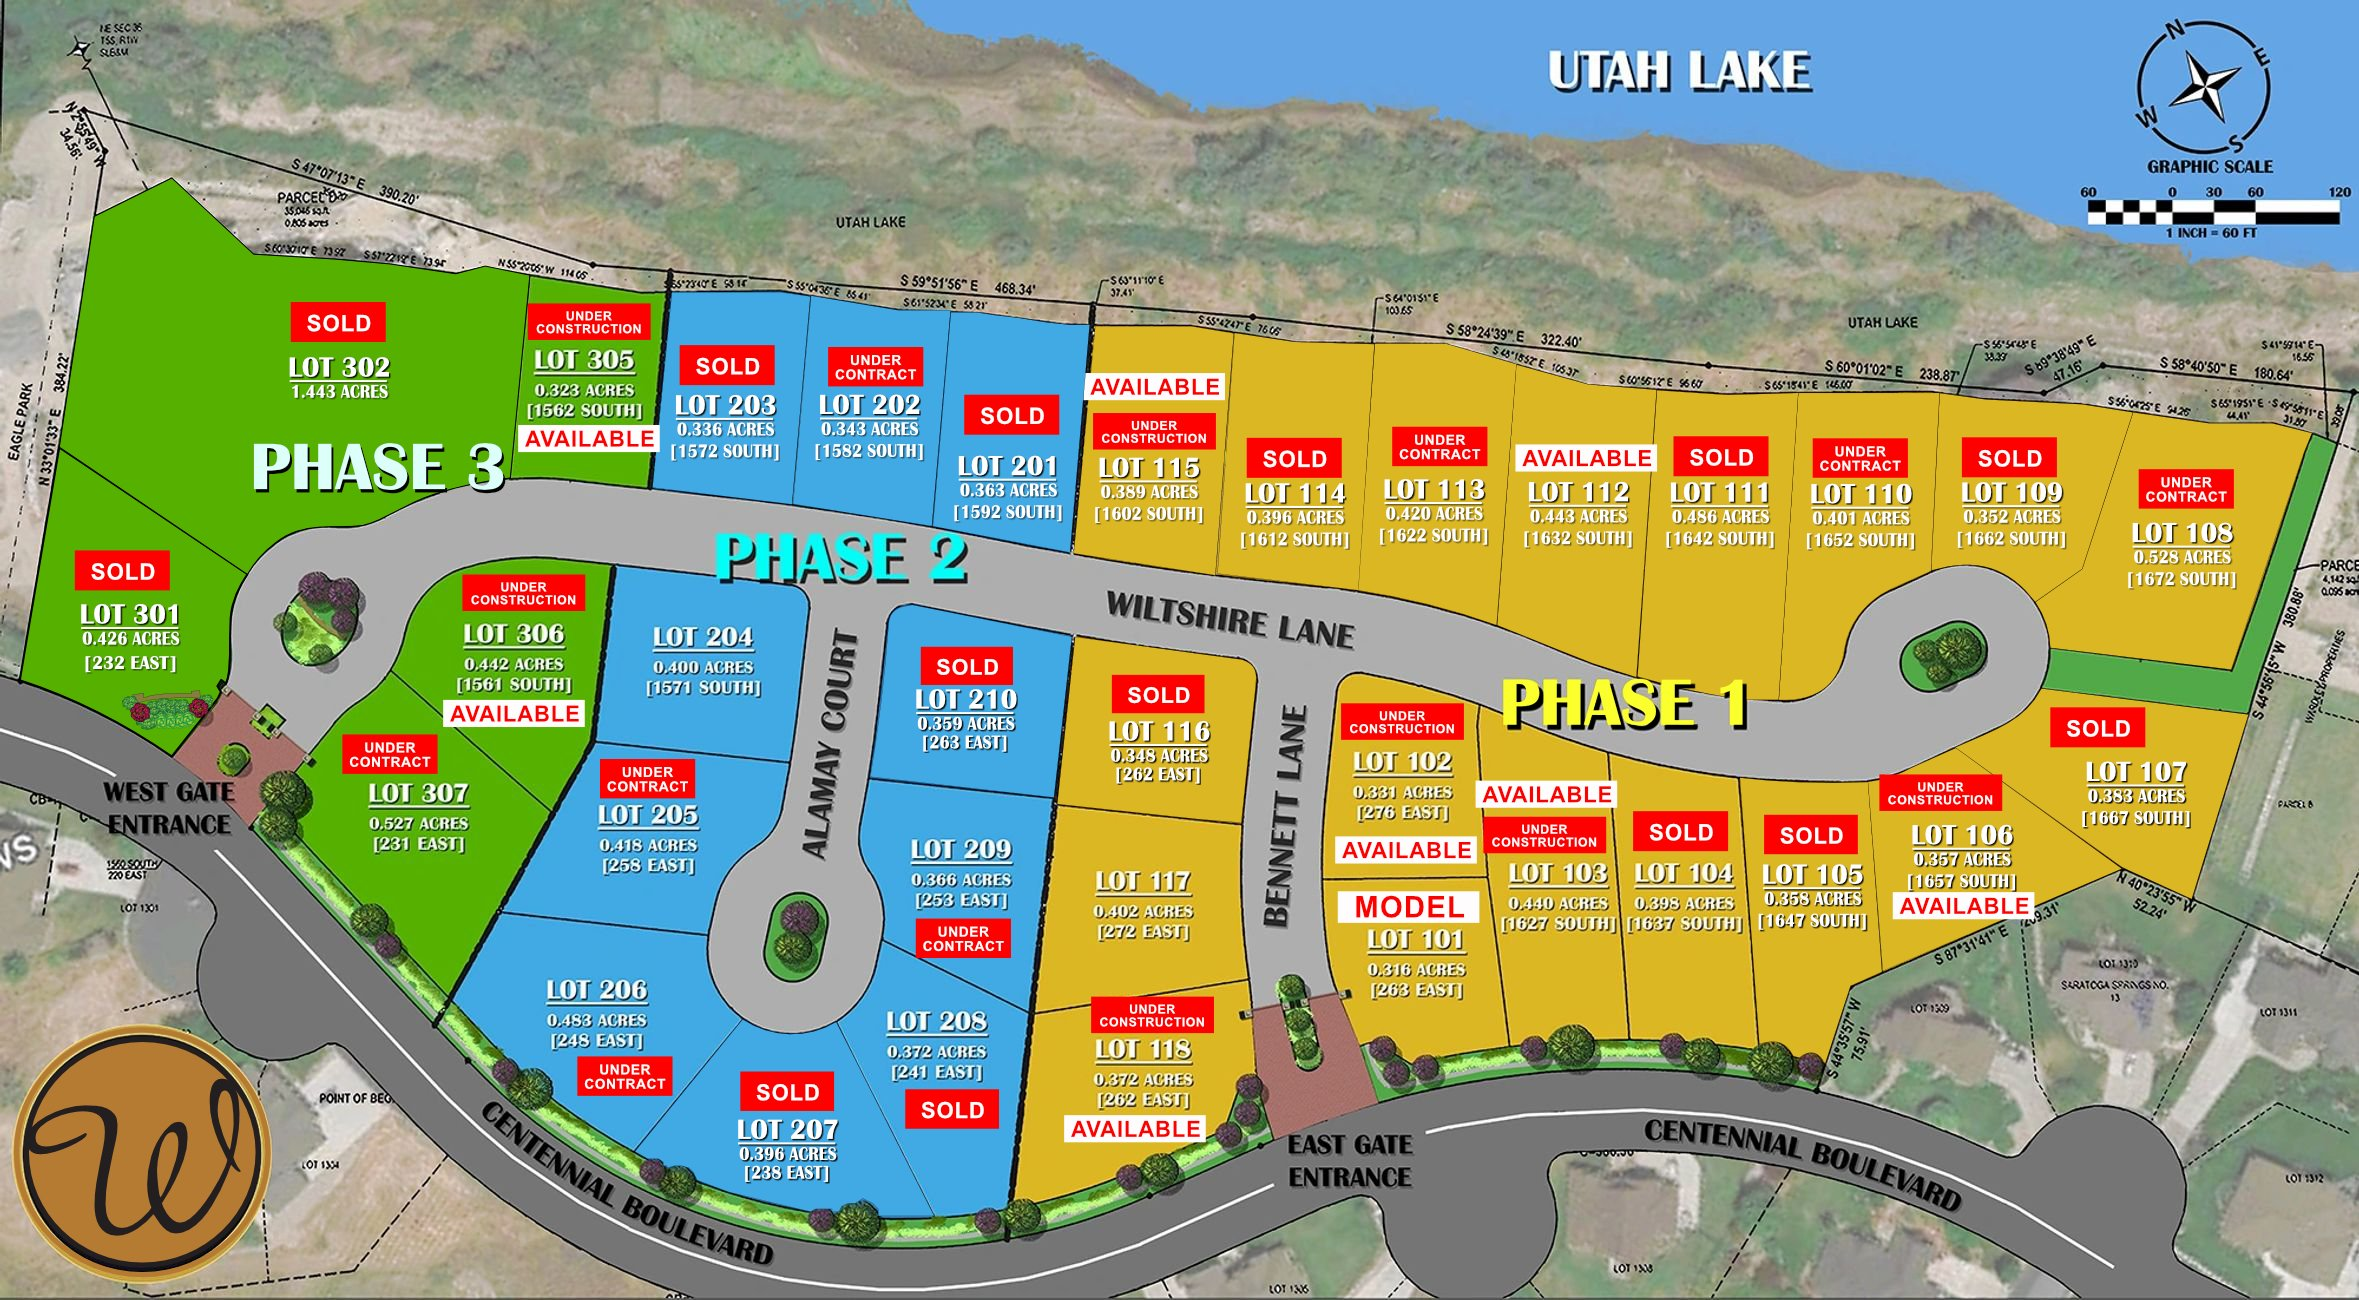 MAP WARDLEY HOME WITH LOTS SOLD AND UNDER CONSTRUCTION AVAILABLE